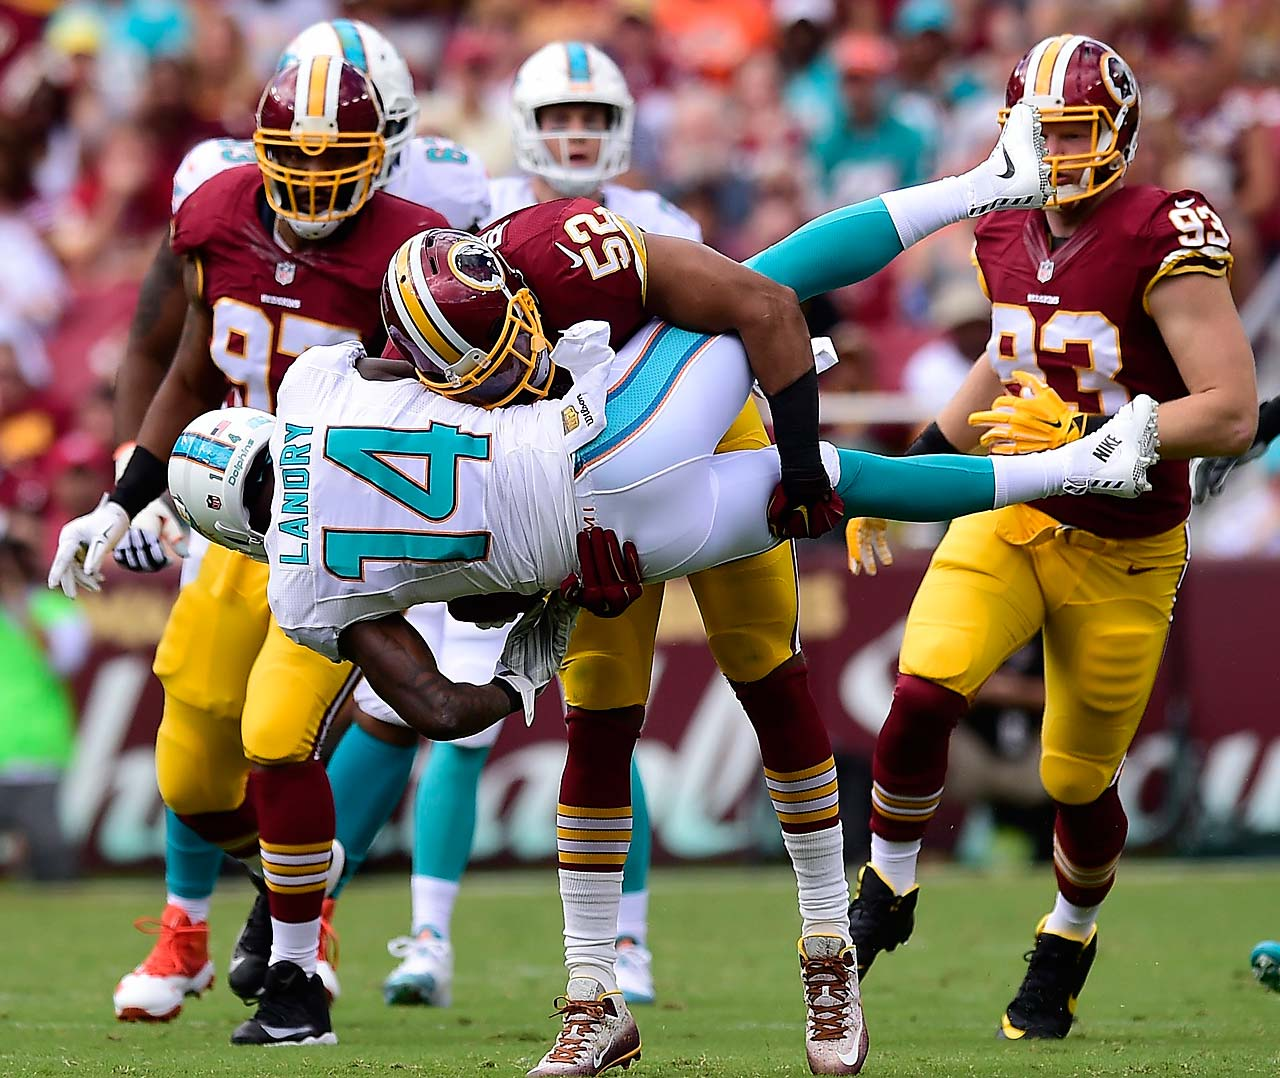 Jarvis Landry is taken down hard by the Redskins.